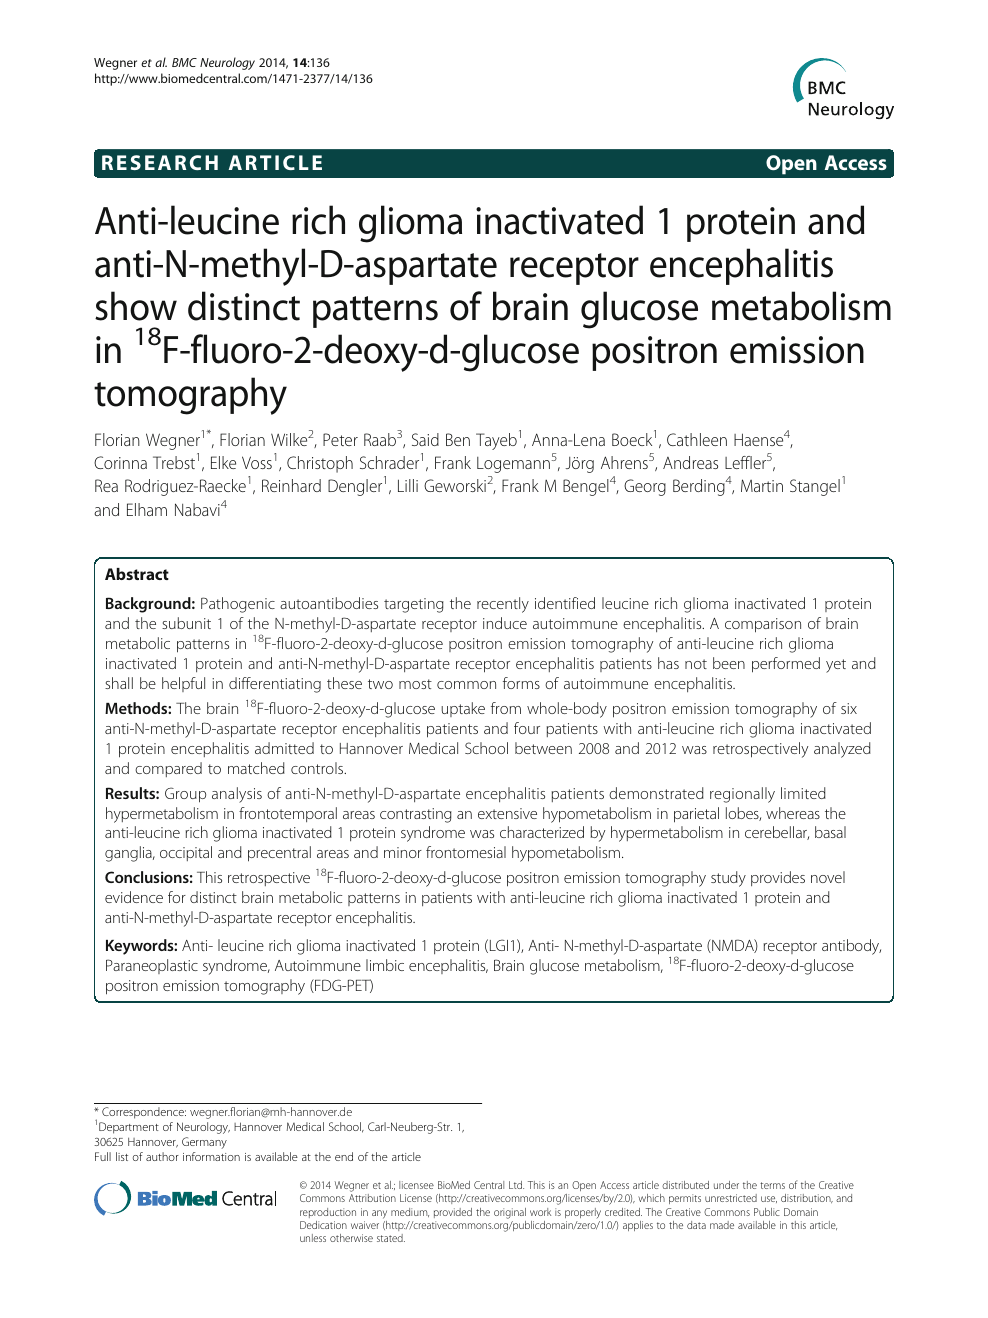 Anti-leucine rich glioma inactivated 1 protein and anti-N-methyl-D